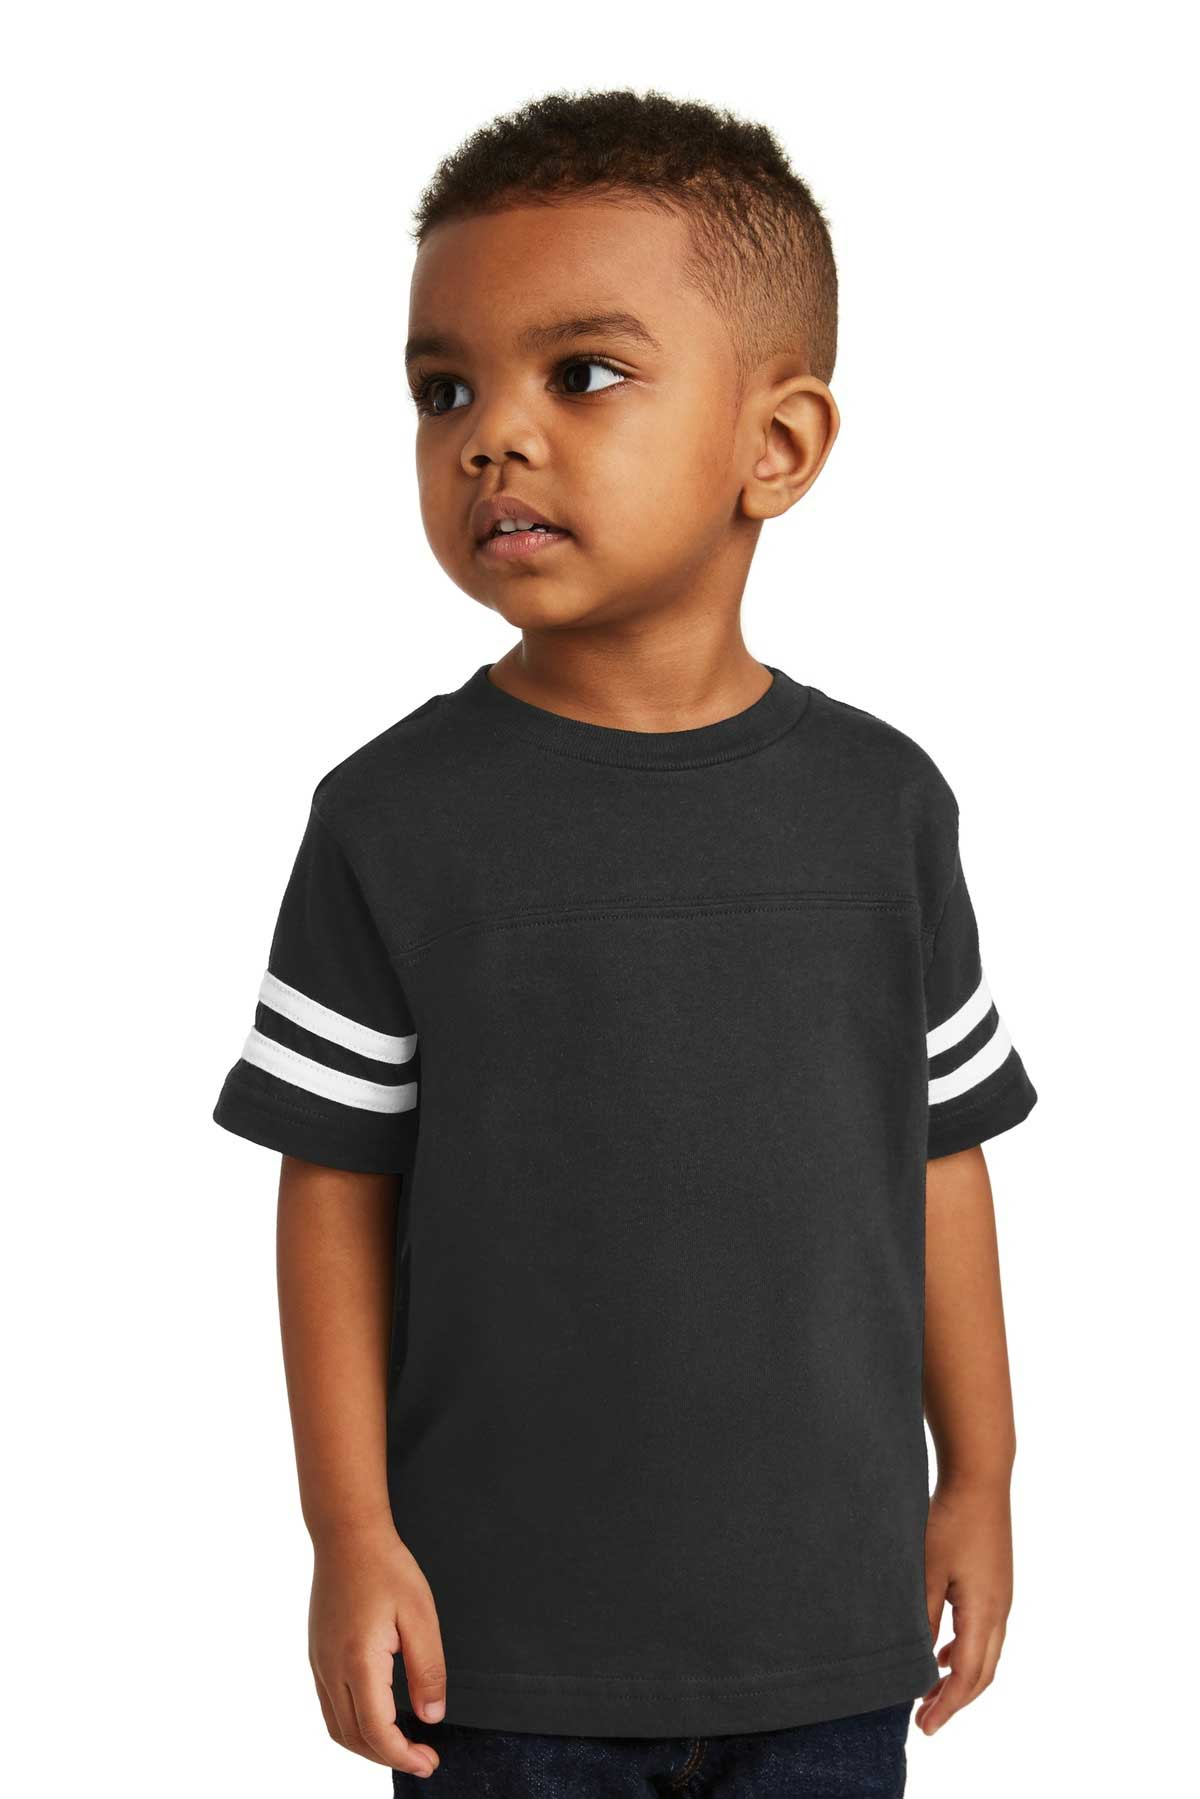 Picture of Rabbit Skins ™  Toddler Football Fine Jersey Tee. RS3037